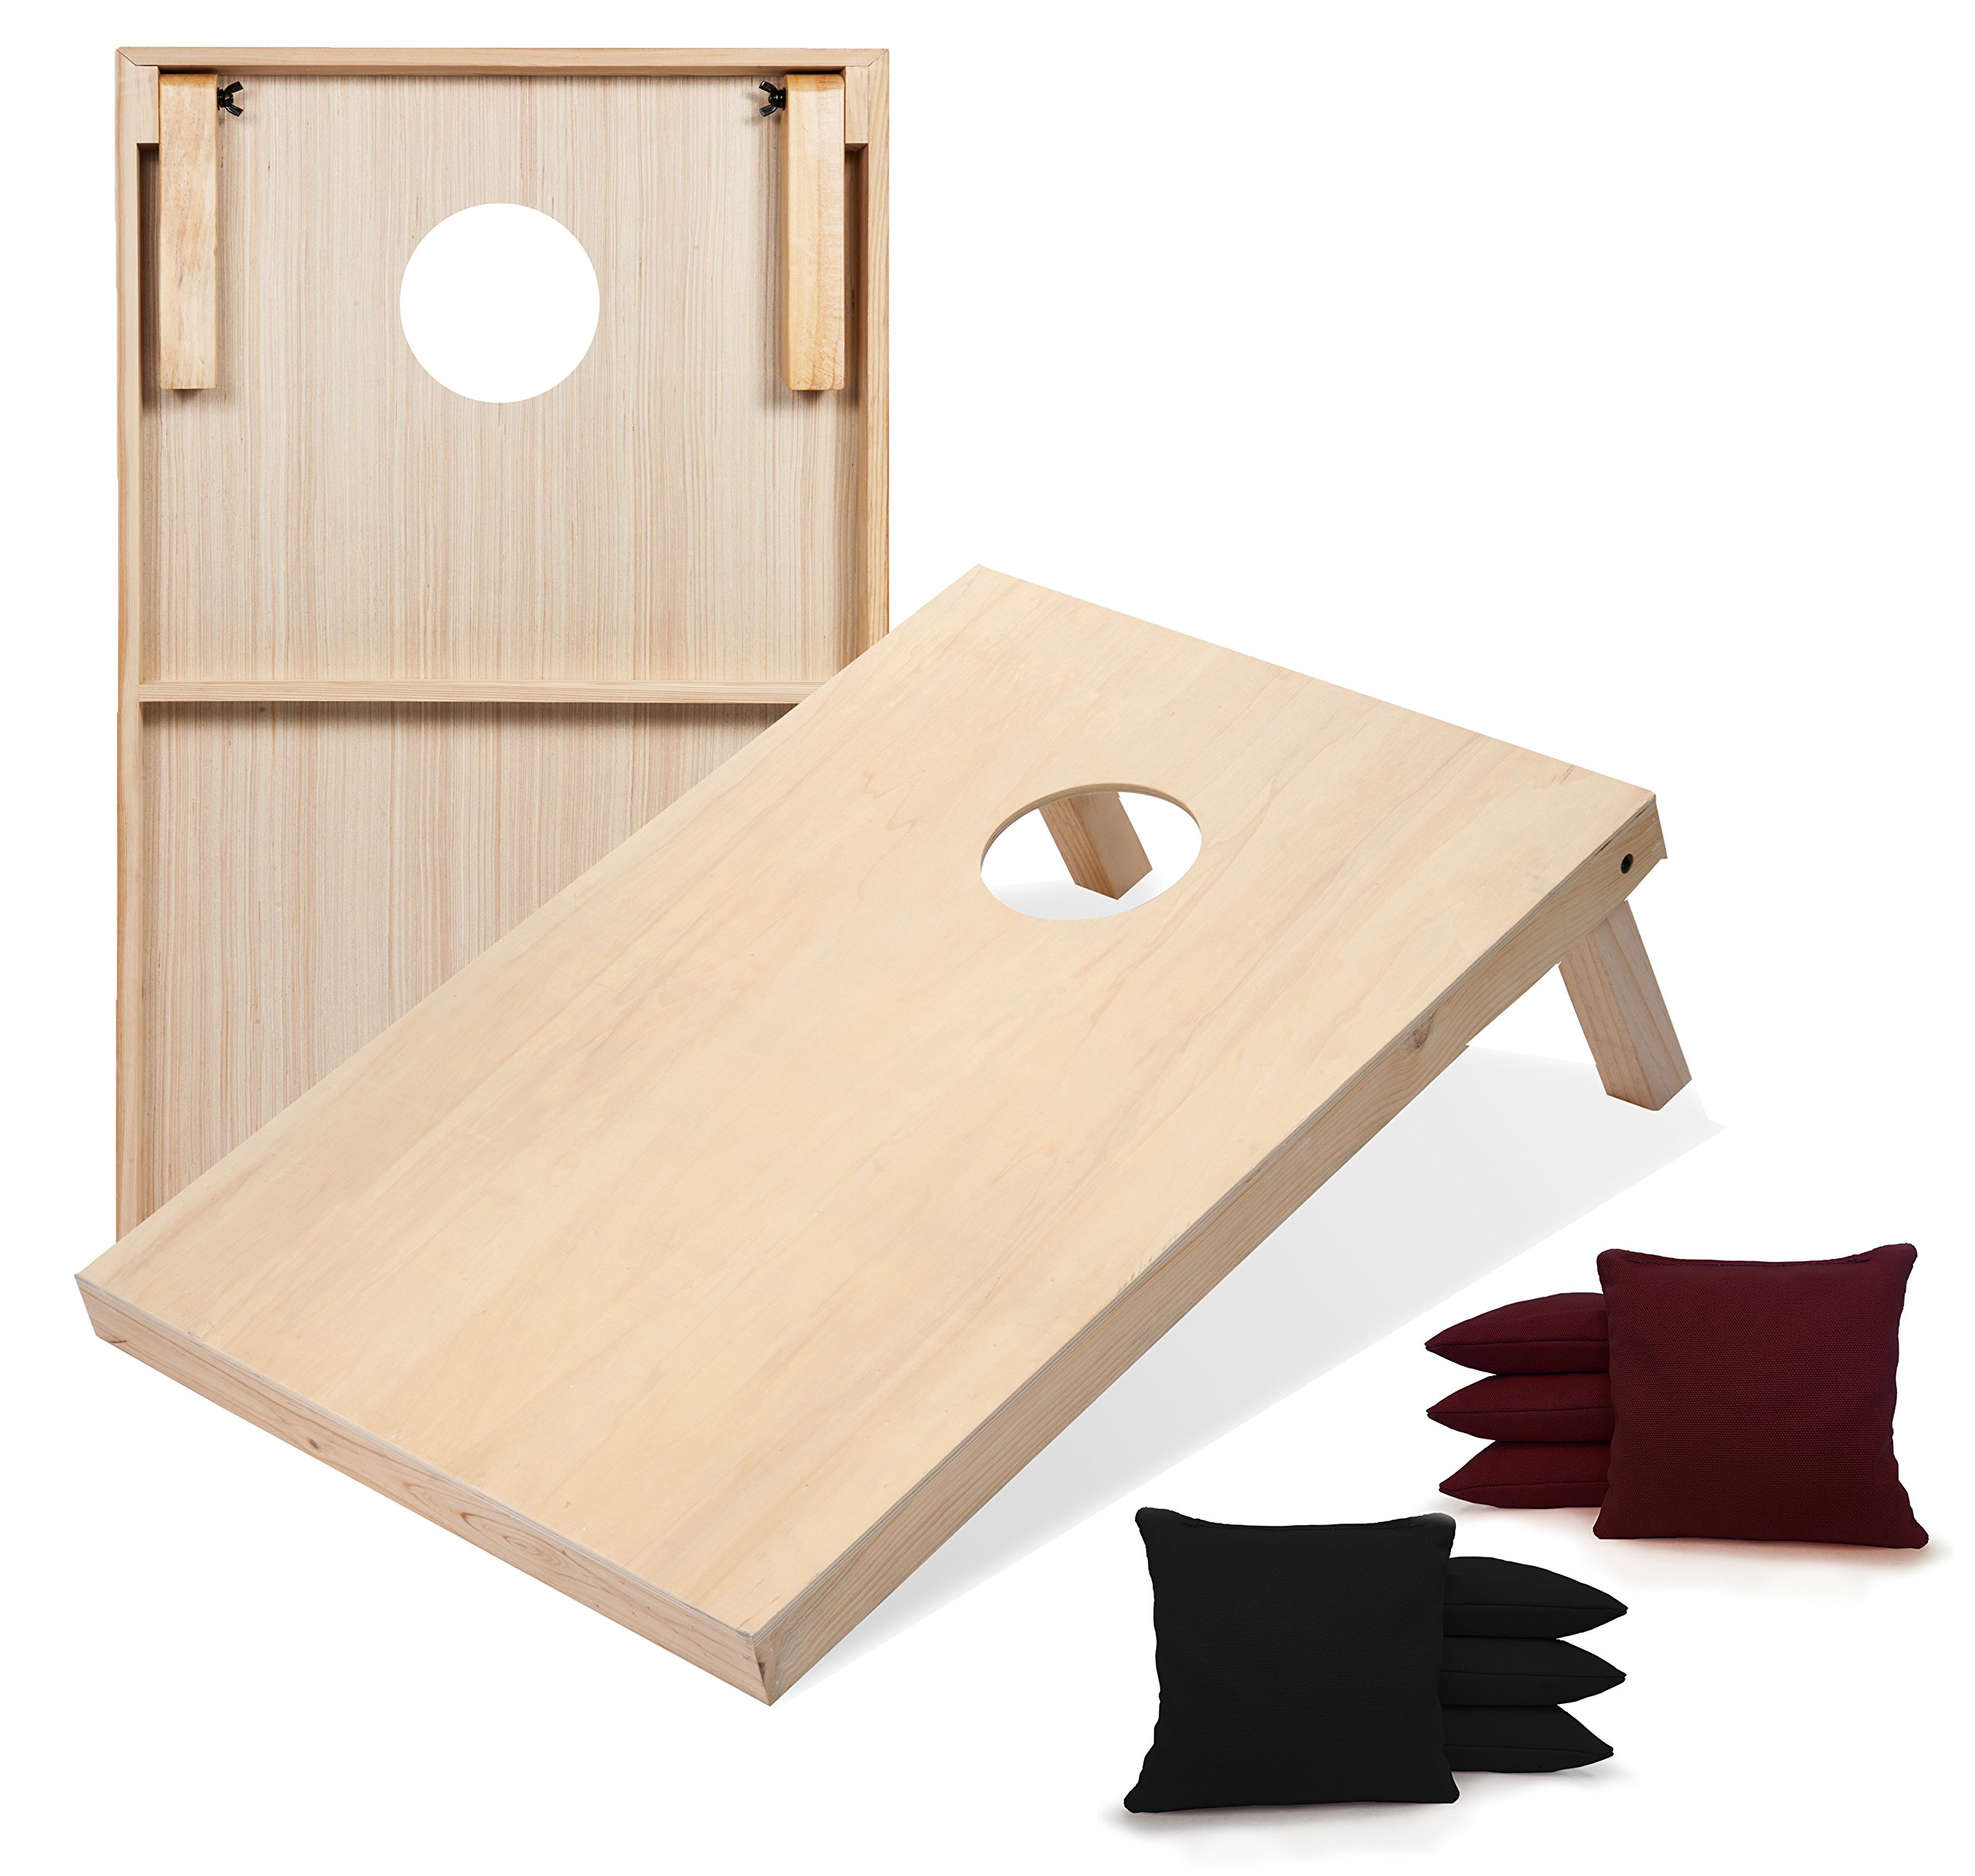 Tailgating Pros Solid Wood Premium Cornhole Boards with Corn Filled Bags - Regulation or Tailgating Size w/Optional Carrying Case & LED Lights by Tailgating Pros